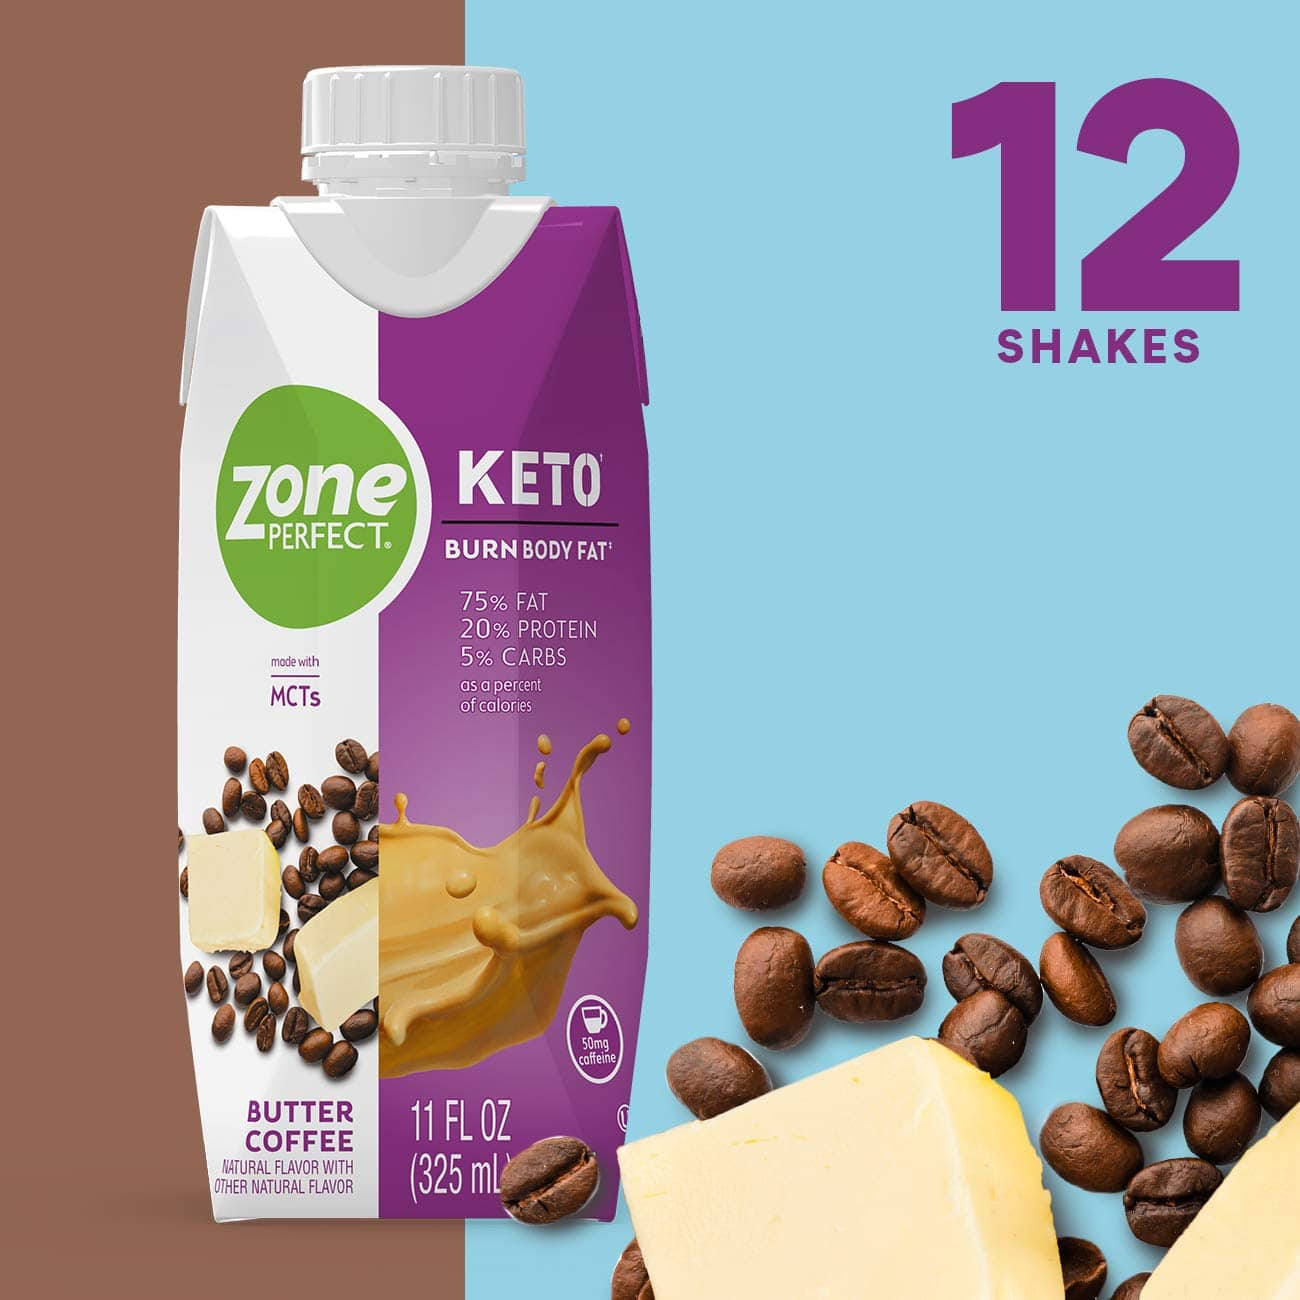 ZonePerfect Keto Shake, Butter Coffee, True Keto Macros To Burn Body Fat, Made With MCTs, 11 fl oz, 12 Count: As low as $17.80 w/S&S